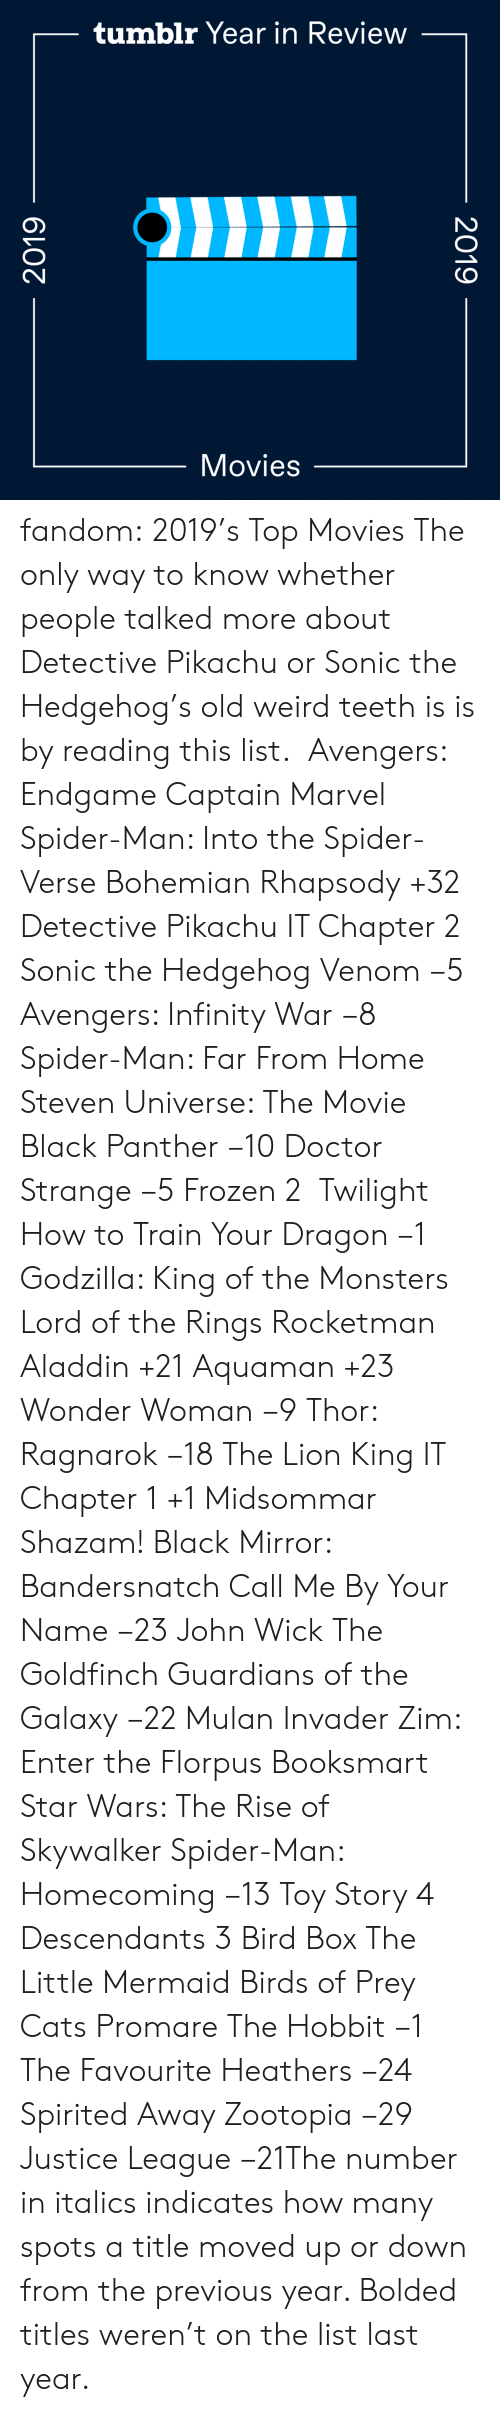 King Of: tumblr Year in Review  Movies  2019  2019 fandom:  2019's Top Movies  The only way to know whether people talked more about Detective Pikachu or Sonic the Hedgehog's old weird teeth is is by reading this list.   Avengers: Endgame  Captain Marvel  Spider-Man: Into the Spider-Verse  Bohemian Rhapsody +32  Detective Pikachu  IT Chapter 2  Sonic the Hedgehog  Venom −5  Avengers: Infinity War −8  Spider-Man: Far From Home  Steven Universe: The Movie  Black Panther −10  Doctor Strange −5  Frozen 2   Twilight  How to Train Your Dragon −1  Godzilla: King of the Monsters  Lord of the Rings  Rocketman  Aladdin +21  Aquaman +23  Wonder Woman −9  Thor: Ragnarok −18  The Lion King  IT Chapter 1 +1  Midsommar  Shazam!  Black Mirror: Bandersnatch  Call Me By Your Name −23  John Wick  The Goldfinch  Guardians of the Galaxy −22  Mulan  Invader Zim: Enter the Florpus  Booksmart  Star Wars: The Rise of Skywalker  Spider-Man: Homecoming −13  Toy Story 4  Descendants 3  Bird Box  The Little Mermaid  Birds of Prey  Cats  Promare  The Hobbit −1  The Favourite  Heathers −24  Spirited Away  Zootopia −29 Justice League −21The number in italics indicates how many spots a title moved up or down from the previous year. Bolded titles weren't on the list last year.